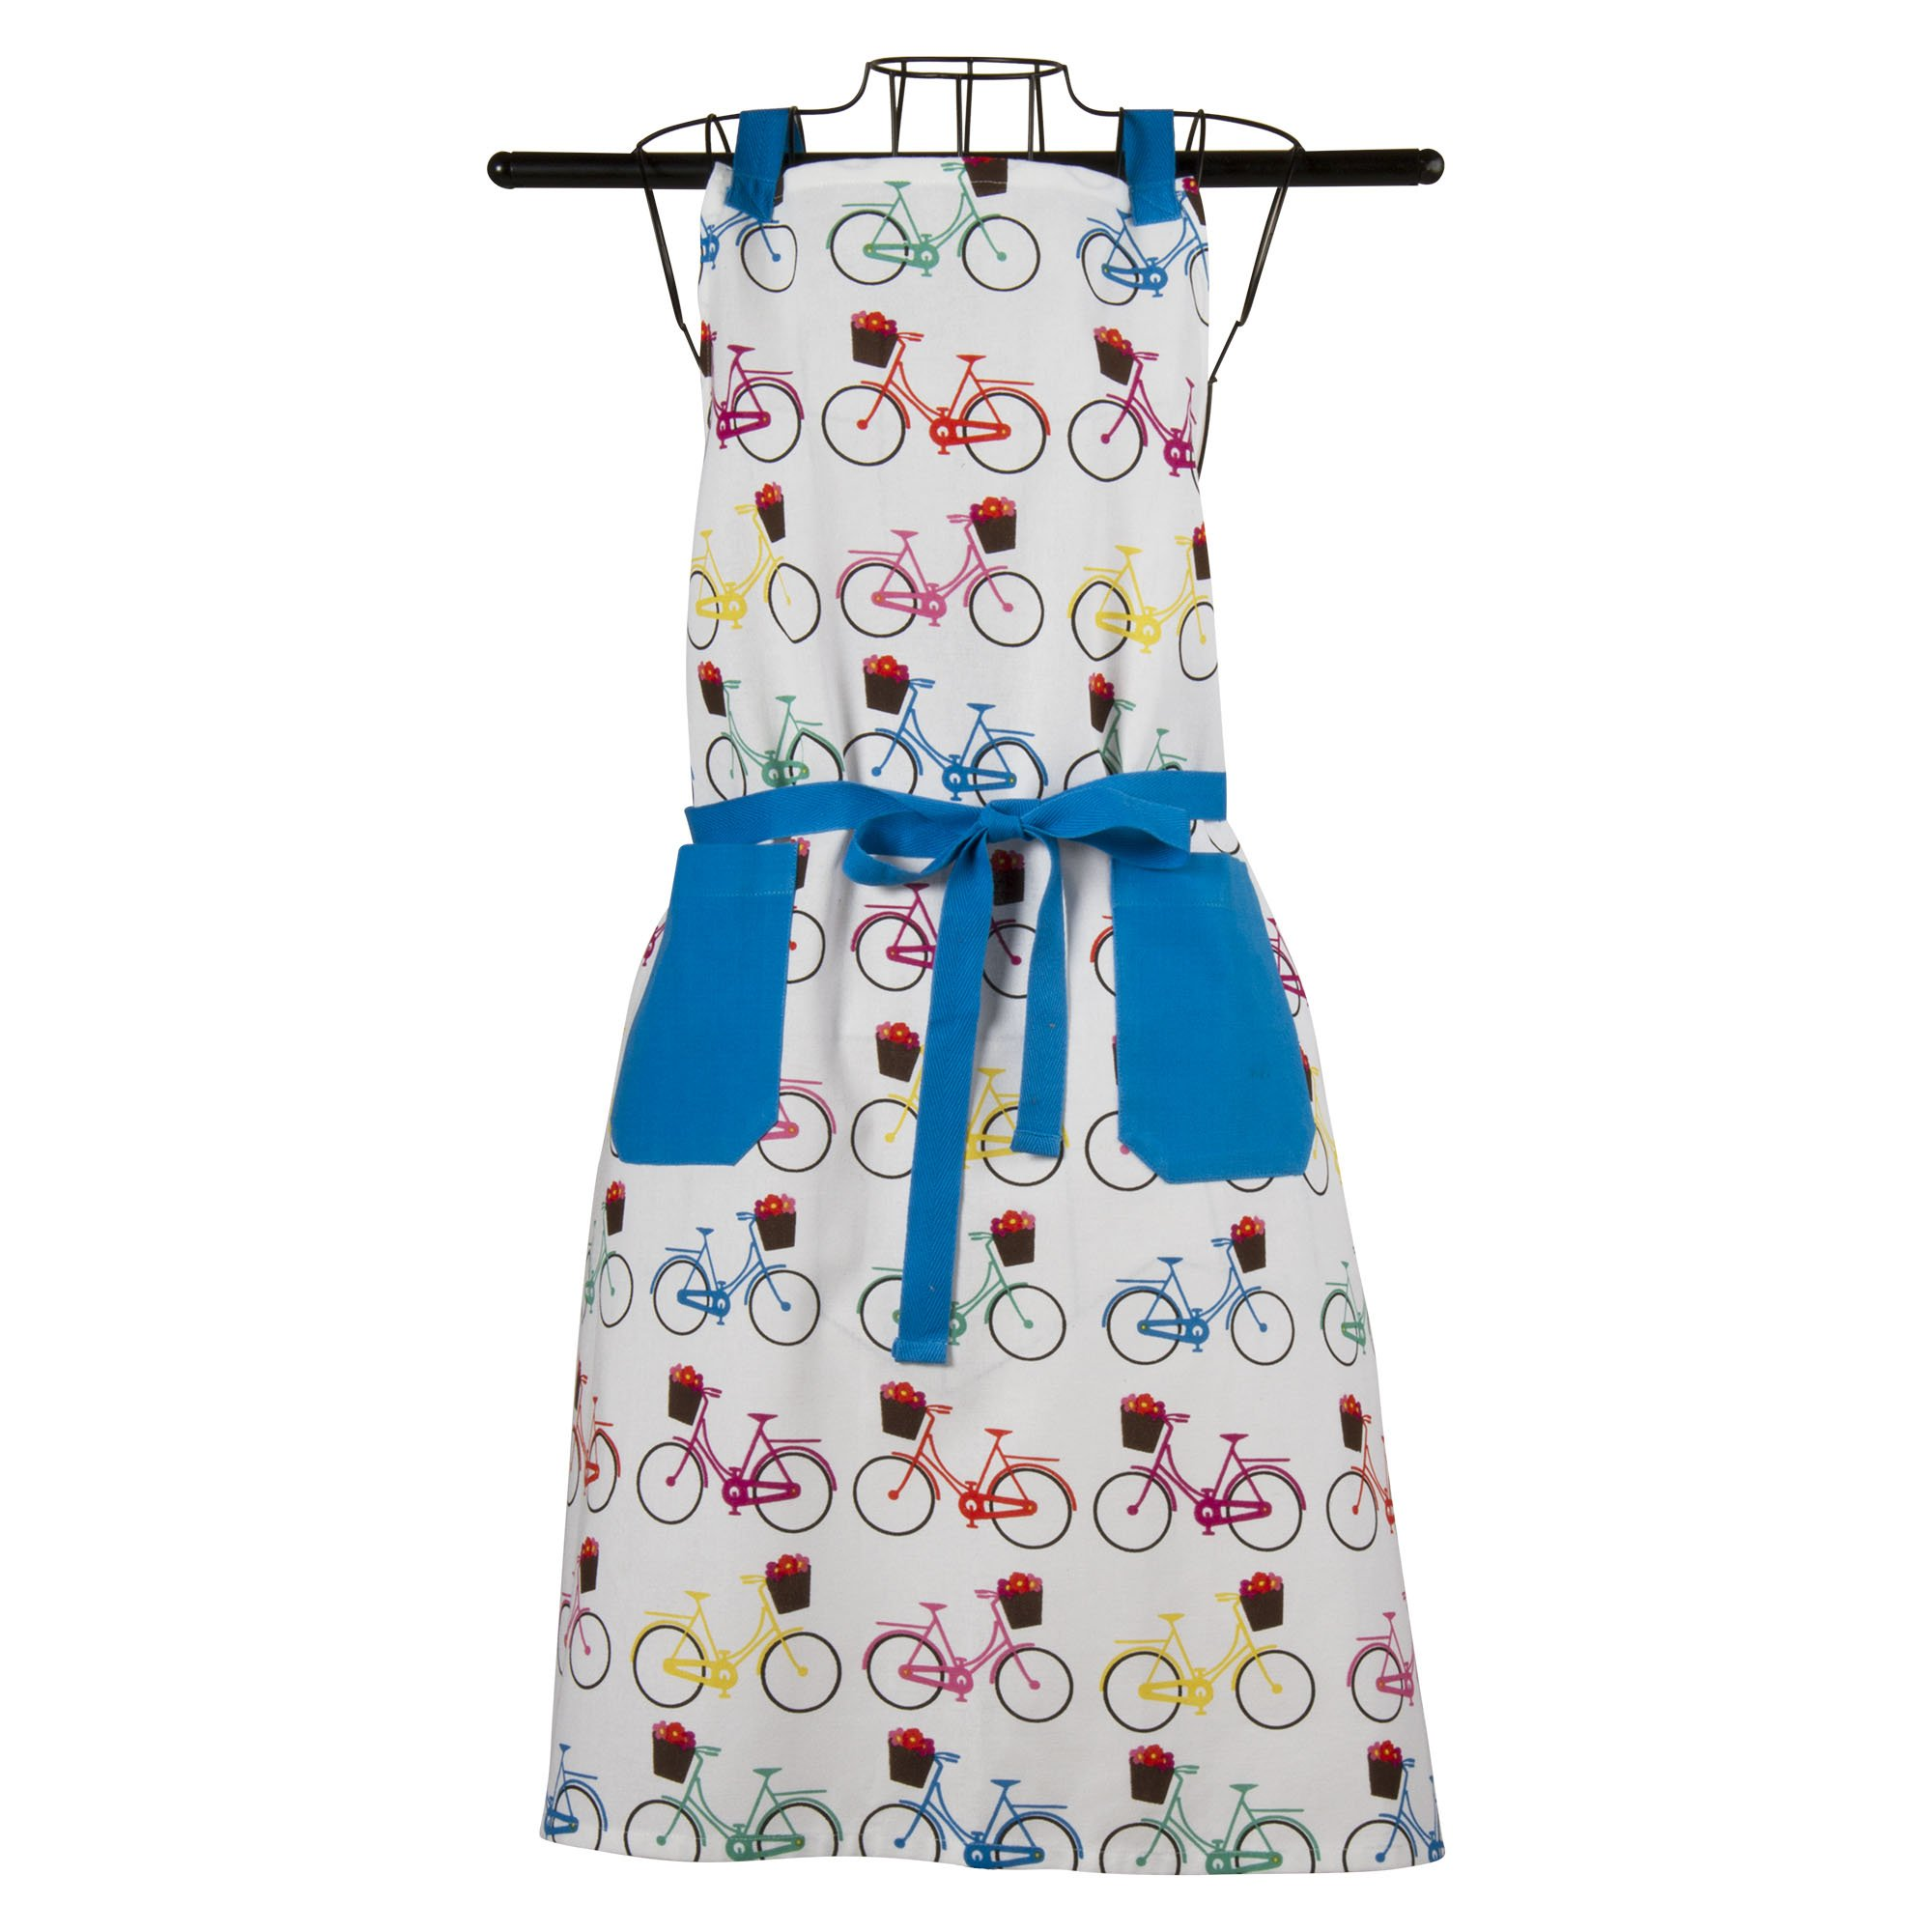 tag - Bicycle Apron, Perfect Addition to Any Kitchen, Multi Colored